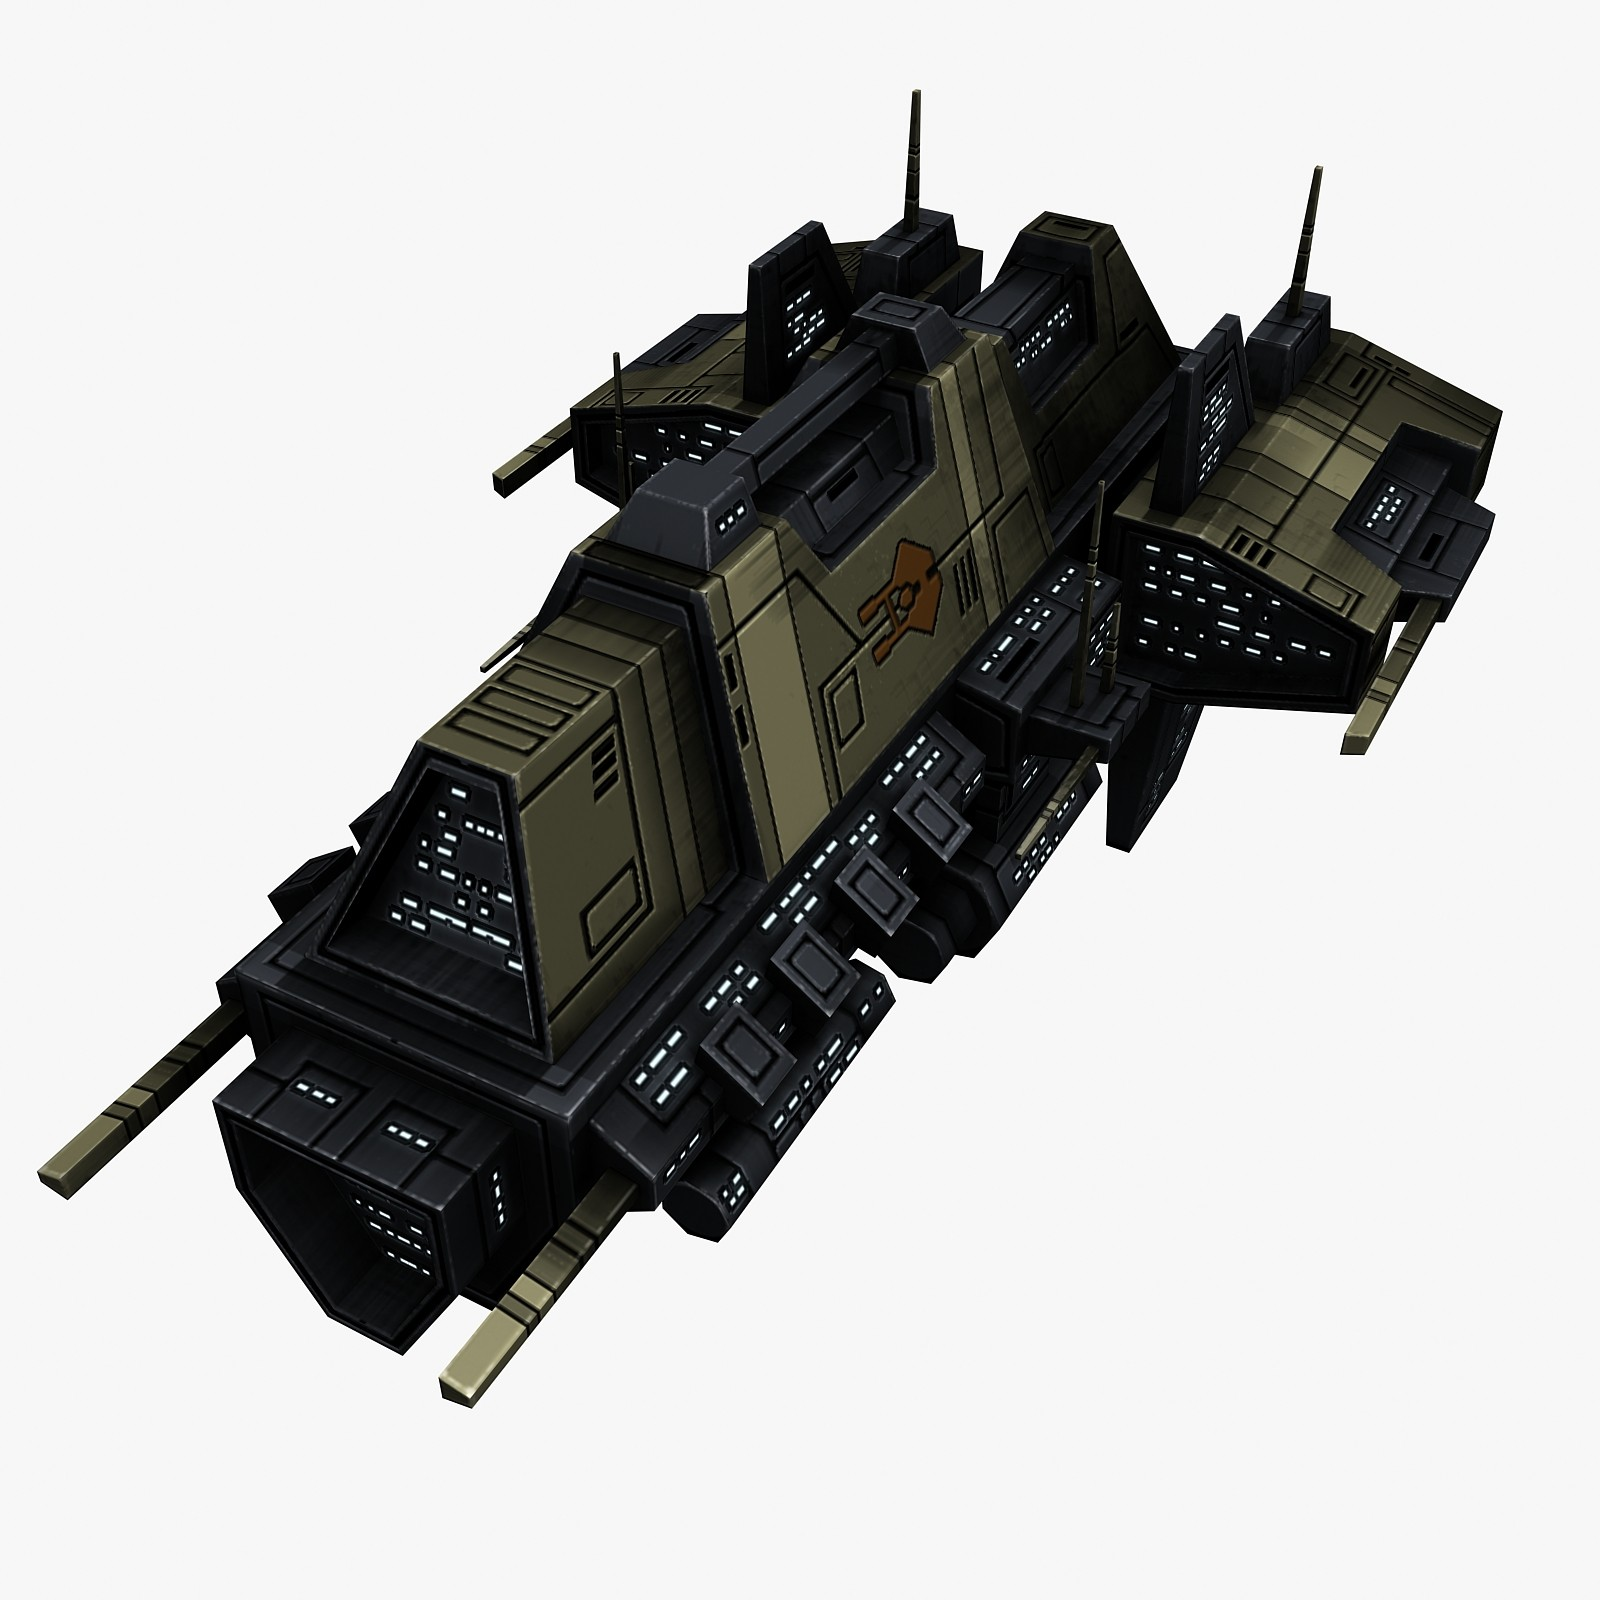 civilian_transport_spaceship_1_preview_1.jpg